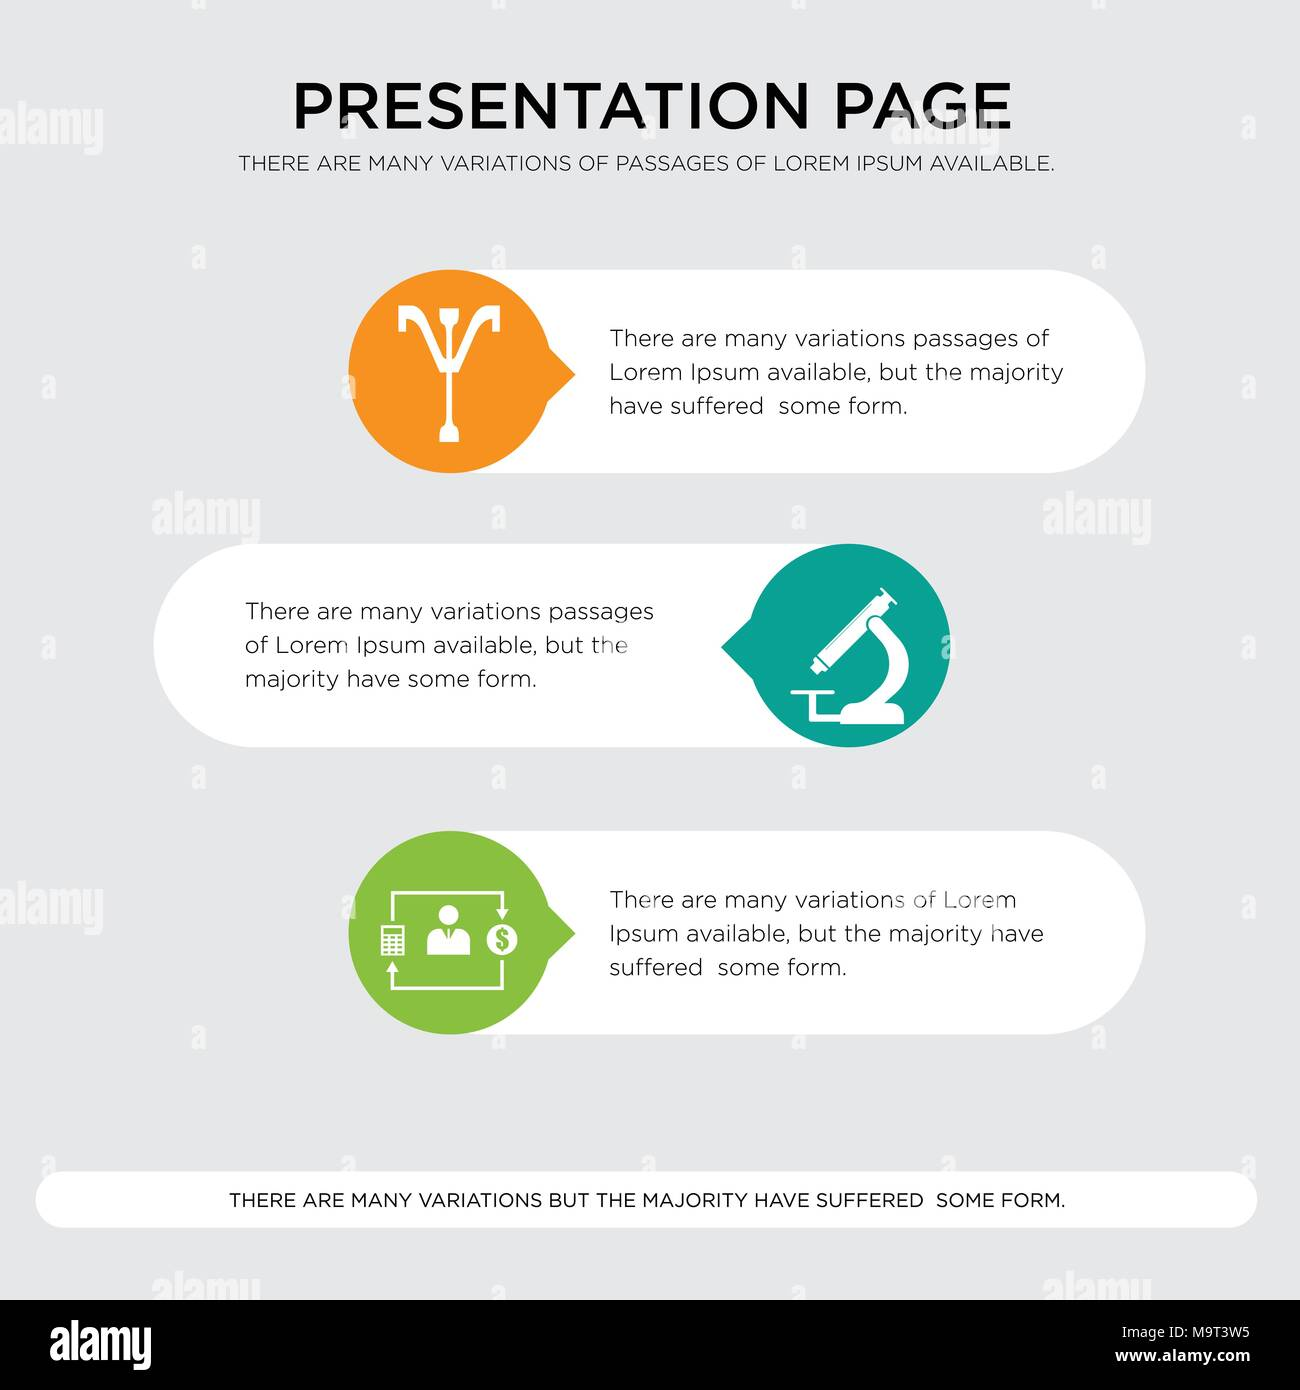 accountant, pathology, psi presentation design template in orange, green, yellow colors with horizontal and rounded shapes - Stock Image